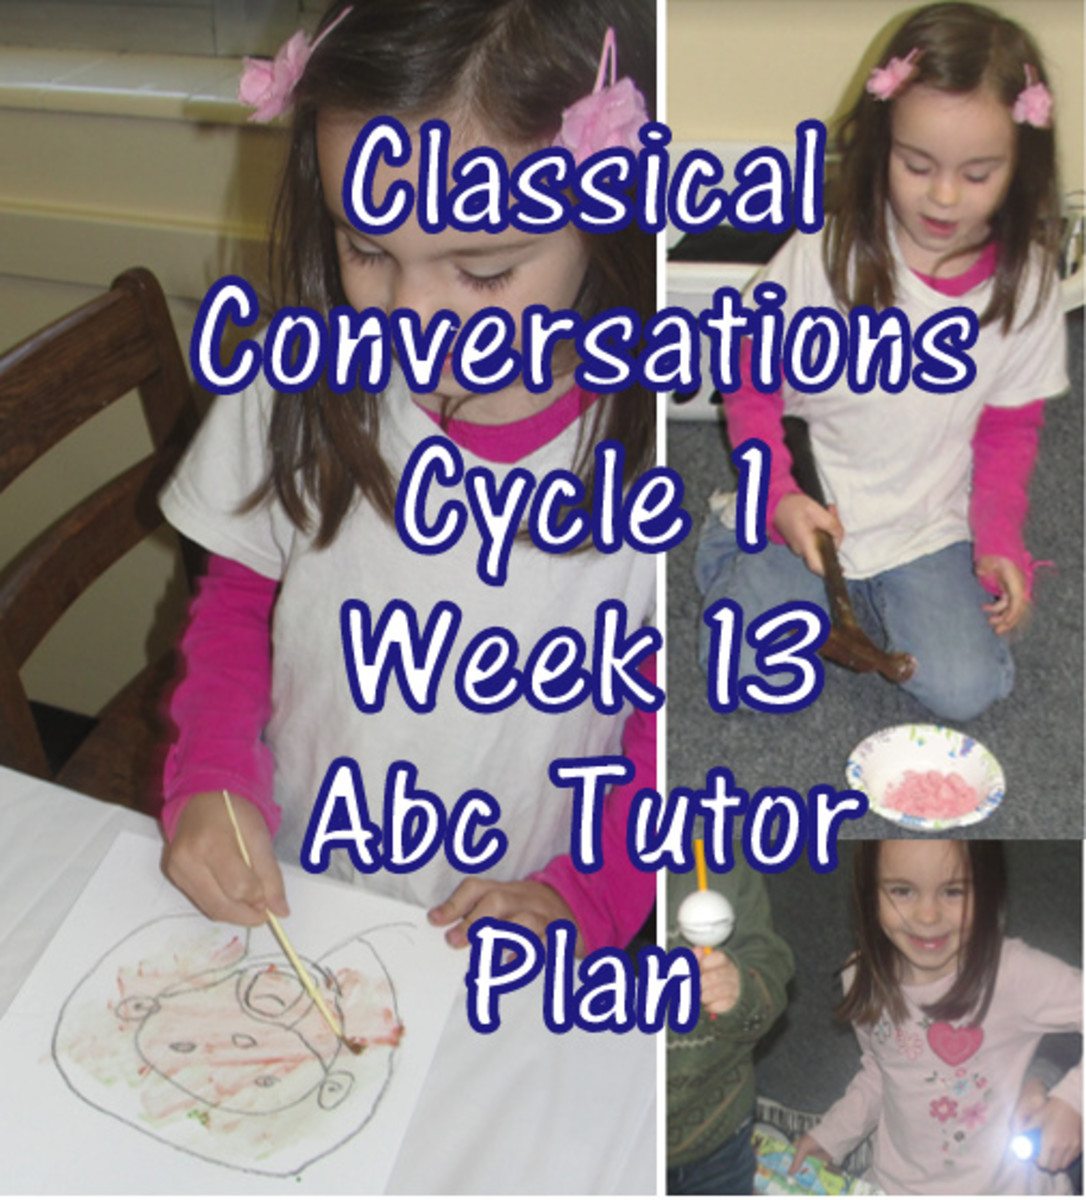 CC Cycle 1 Week 13 Plan for Abecedarian Tutors